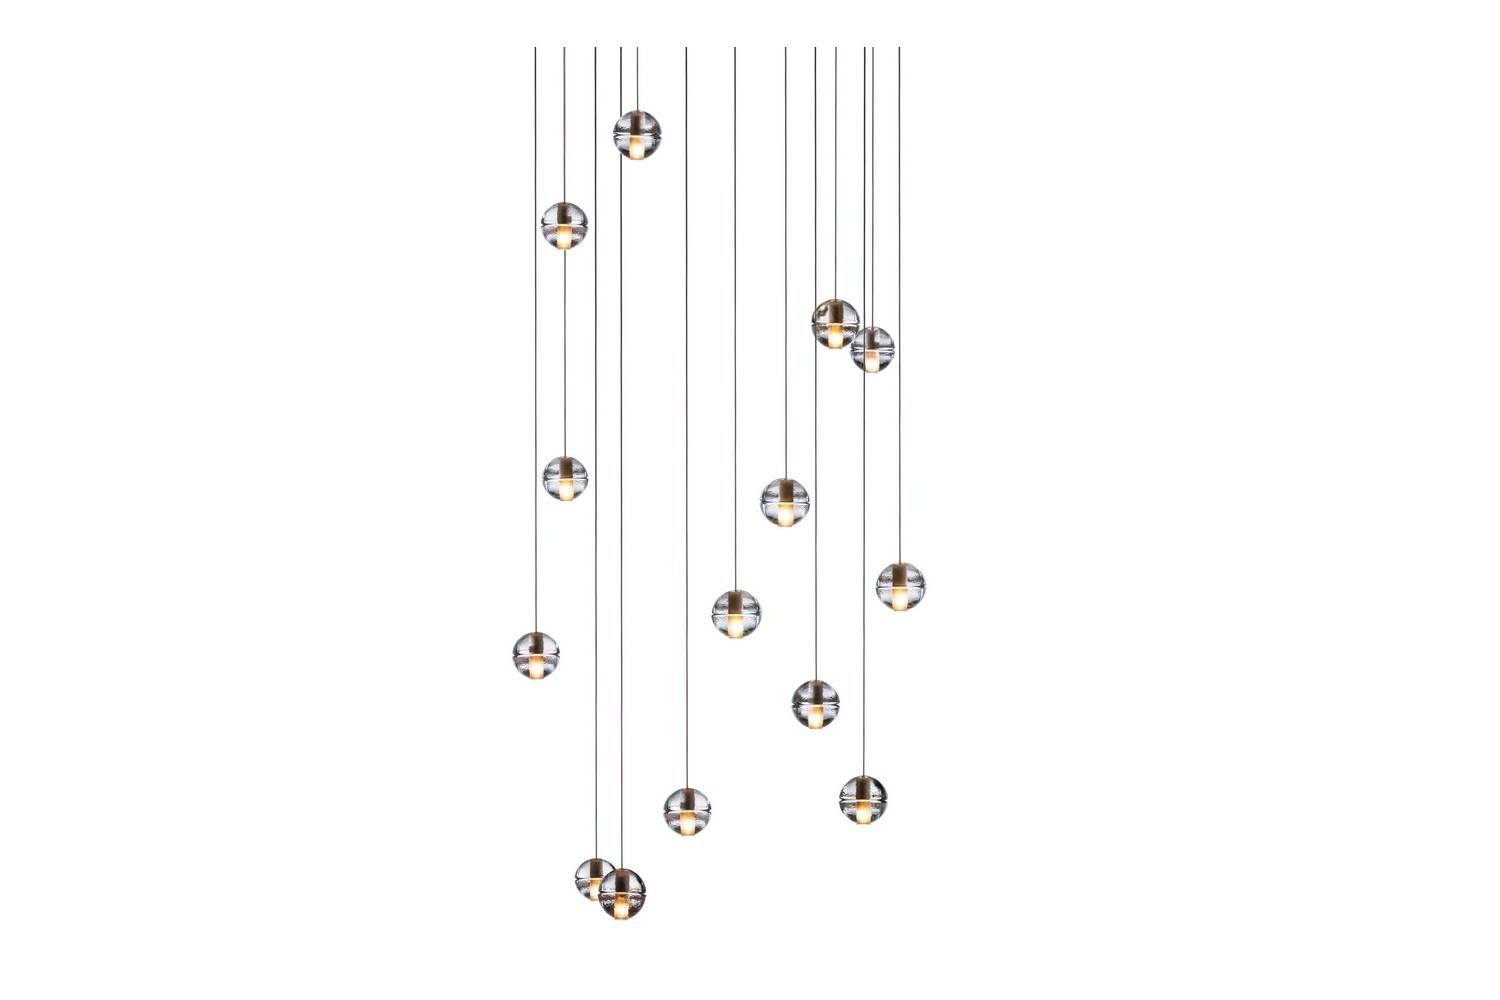 14.14 Suspension Lamp by Omer Arbel for Bocci